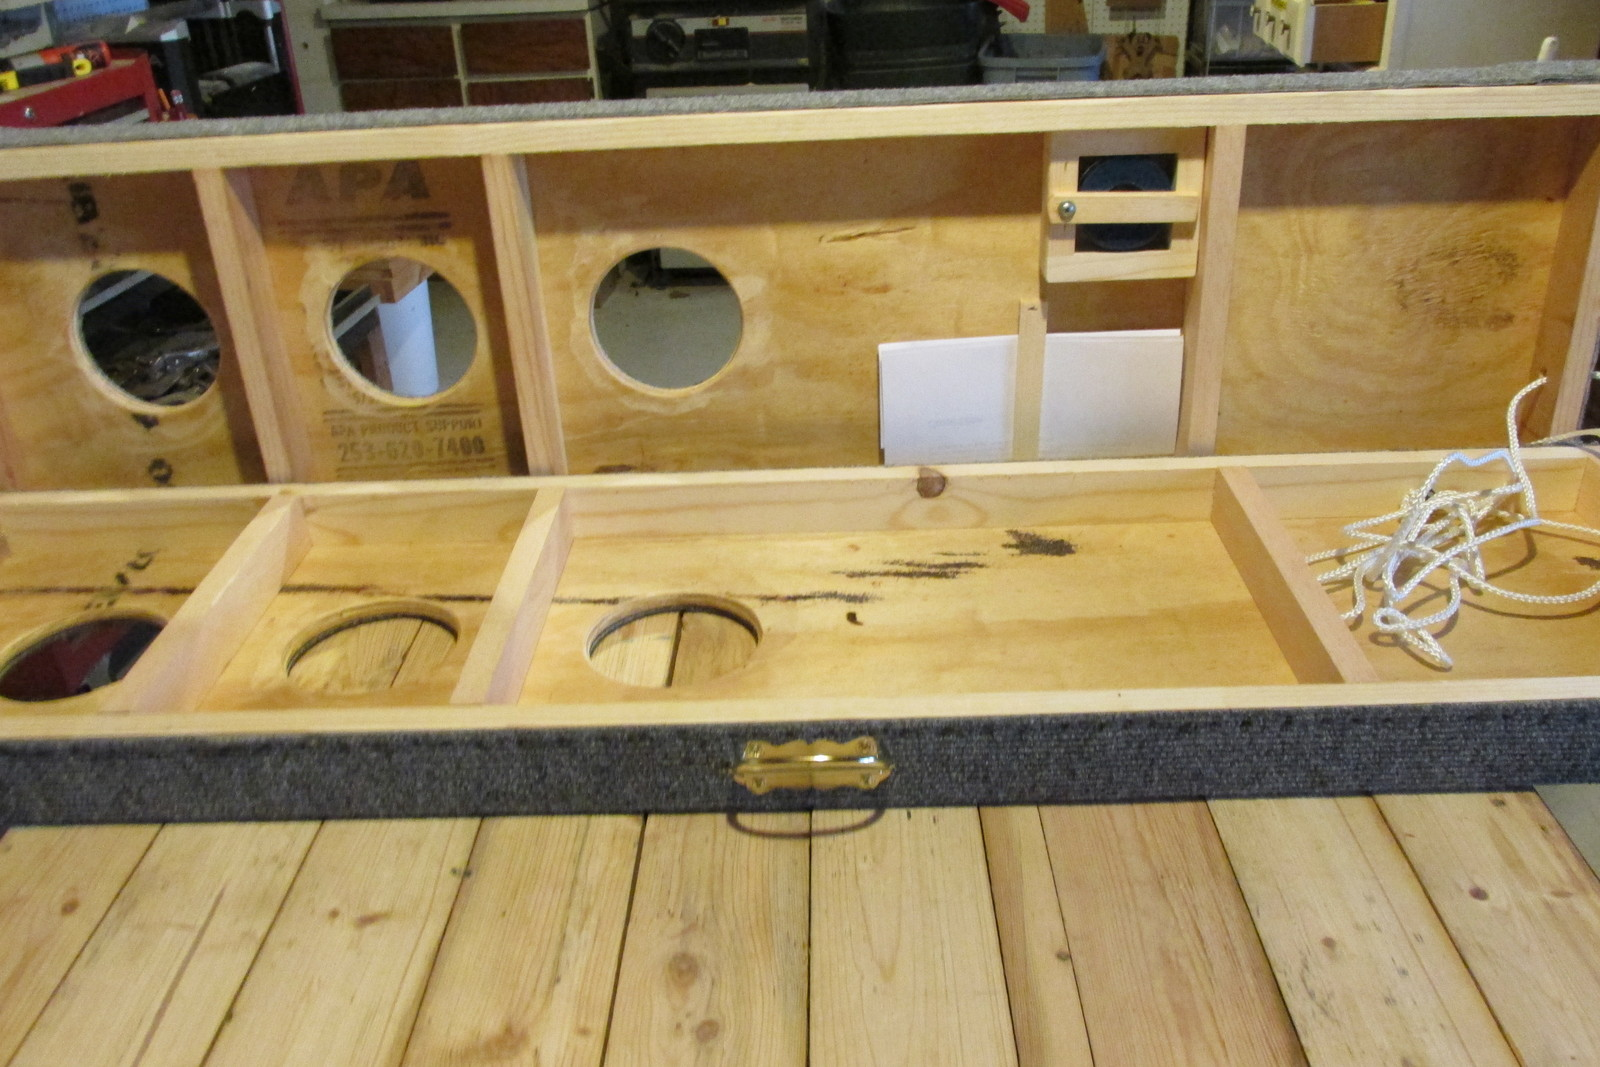 washer board game, washerboard  - washer toss AKA Redneck horse shoes